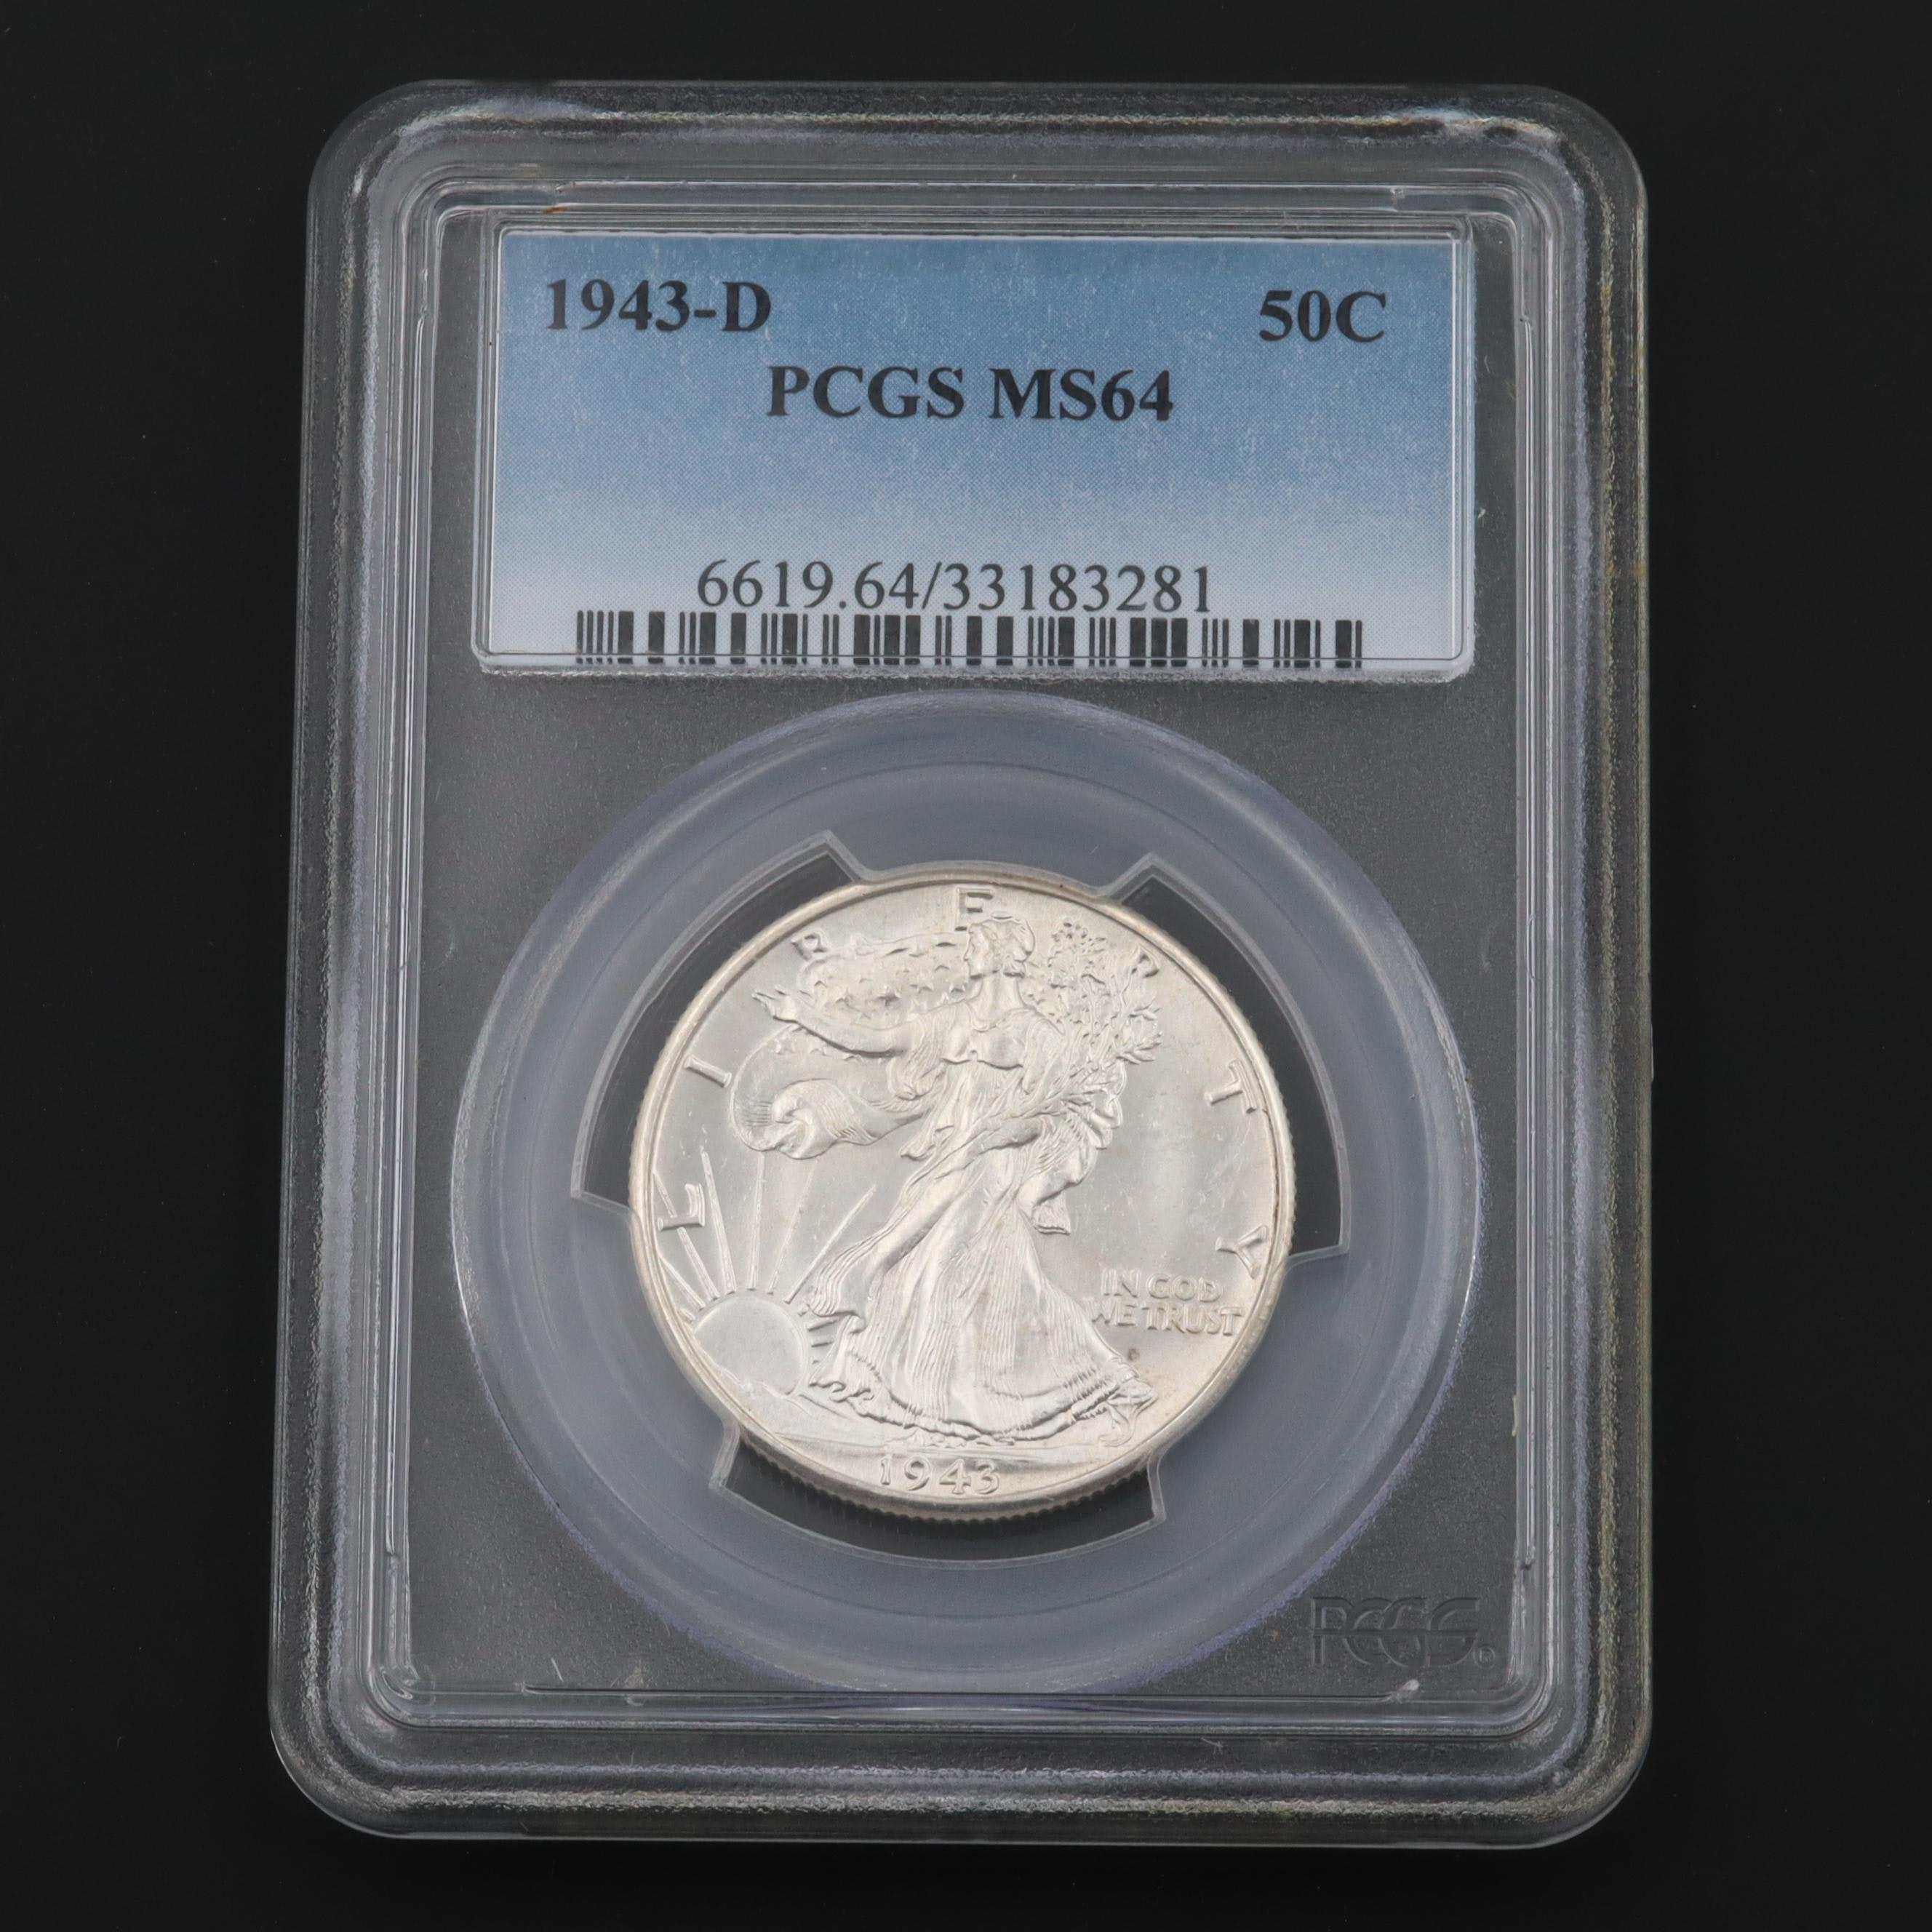 PCGS Graded MS64 1943-D Walking Liberty Silver Half Dollar